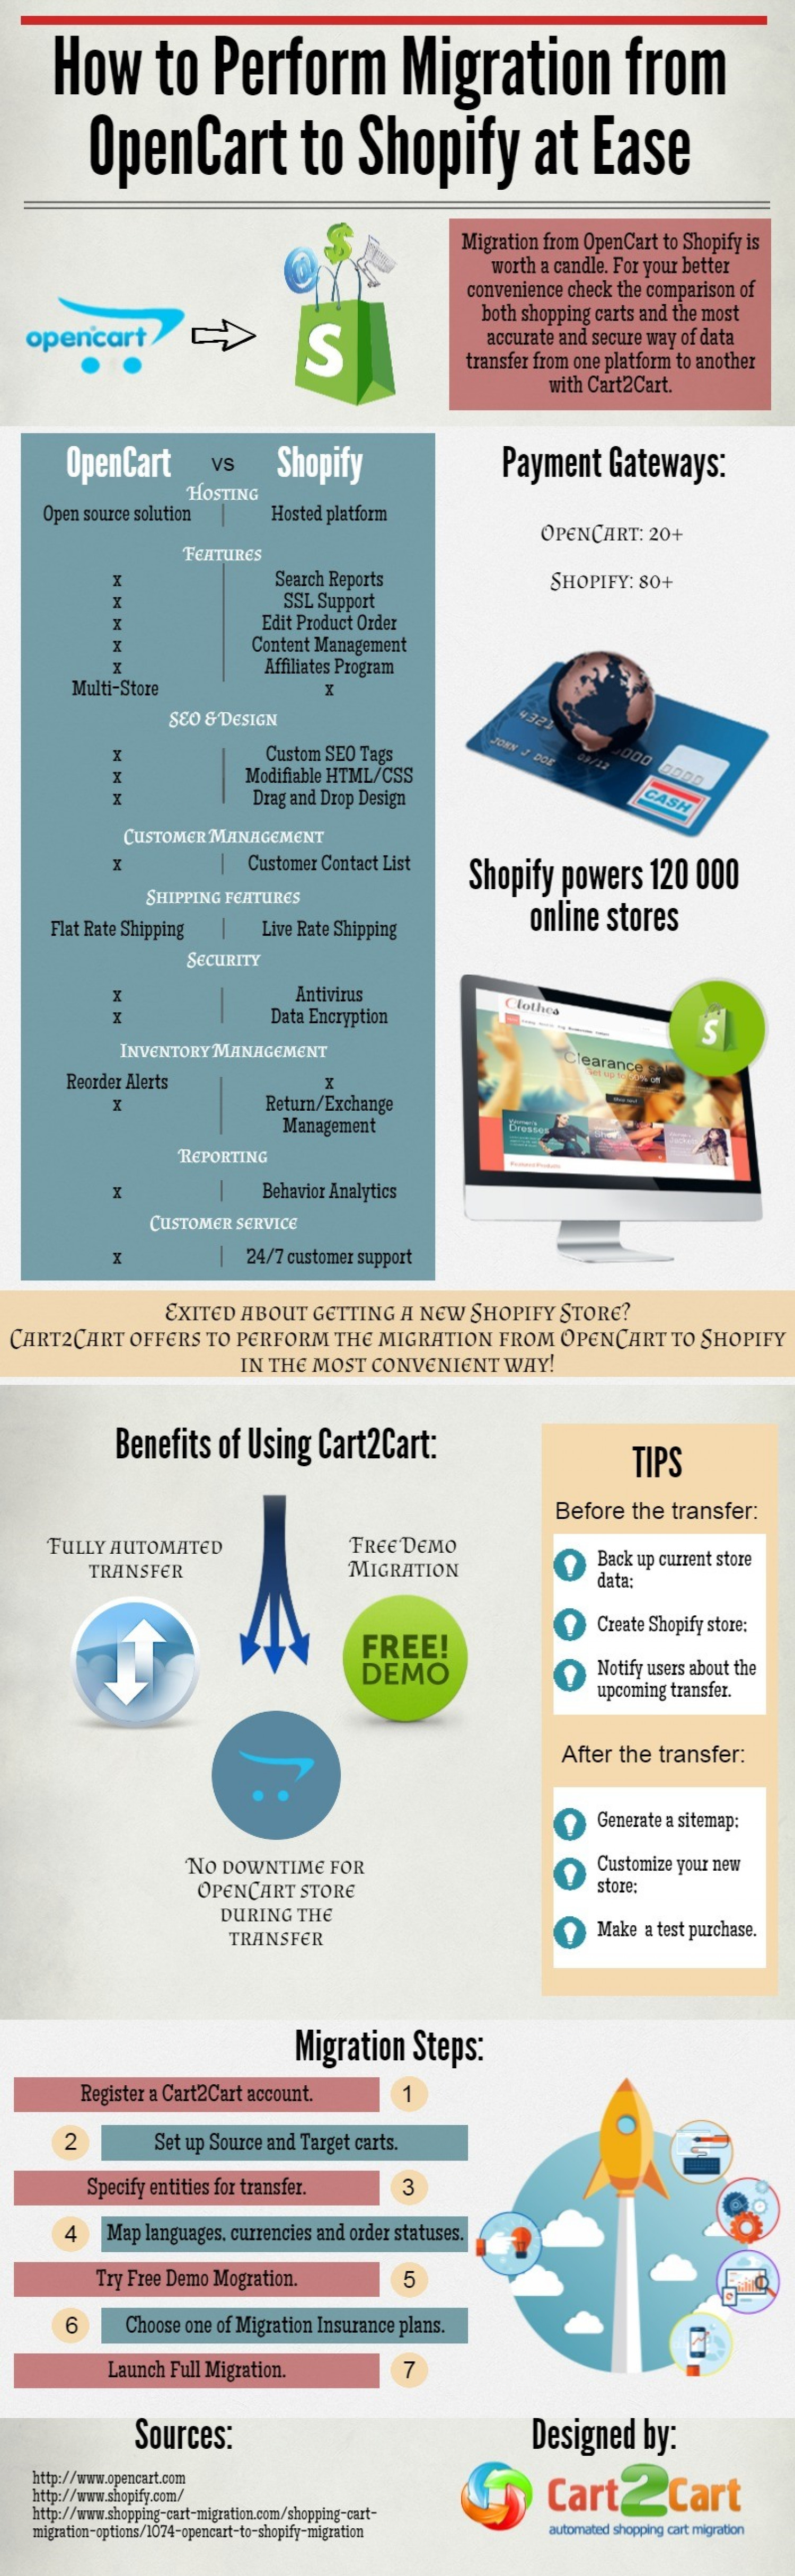 How to Perform Migration from OpenCart to Shopify at Ease Infographic